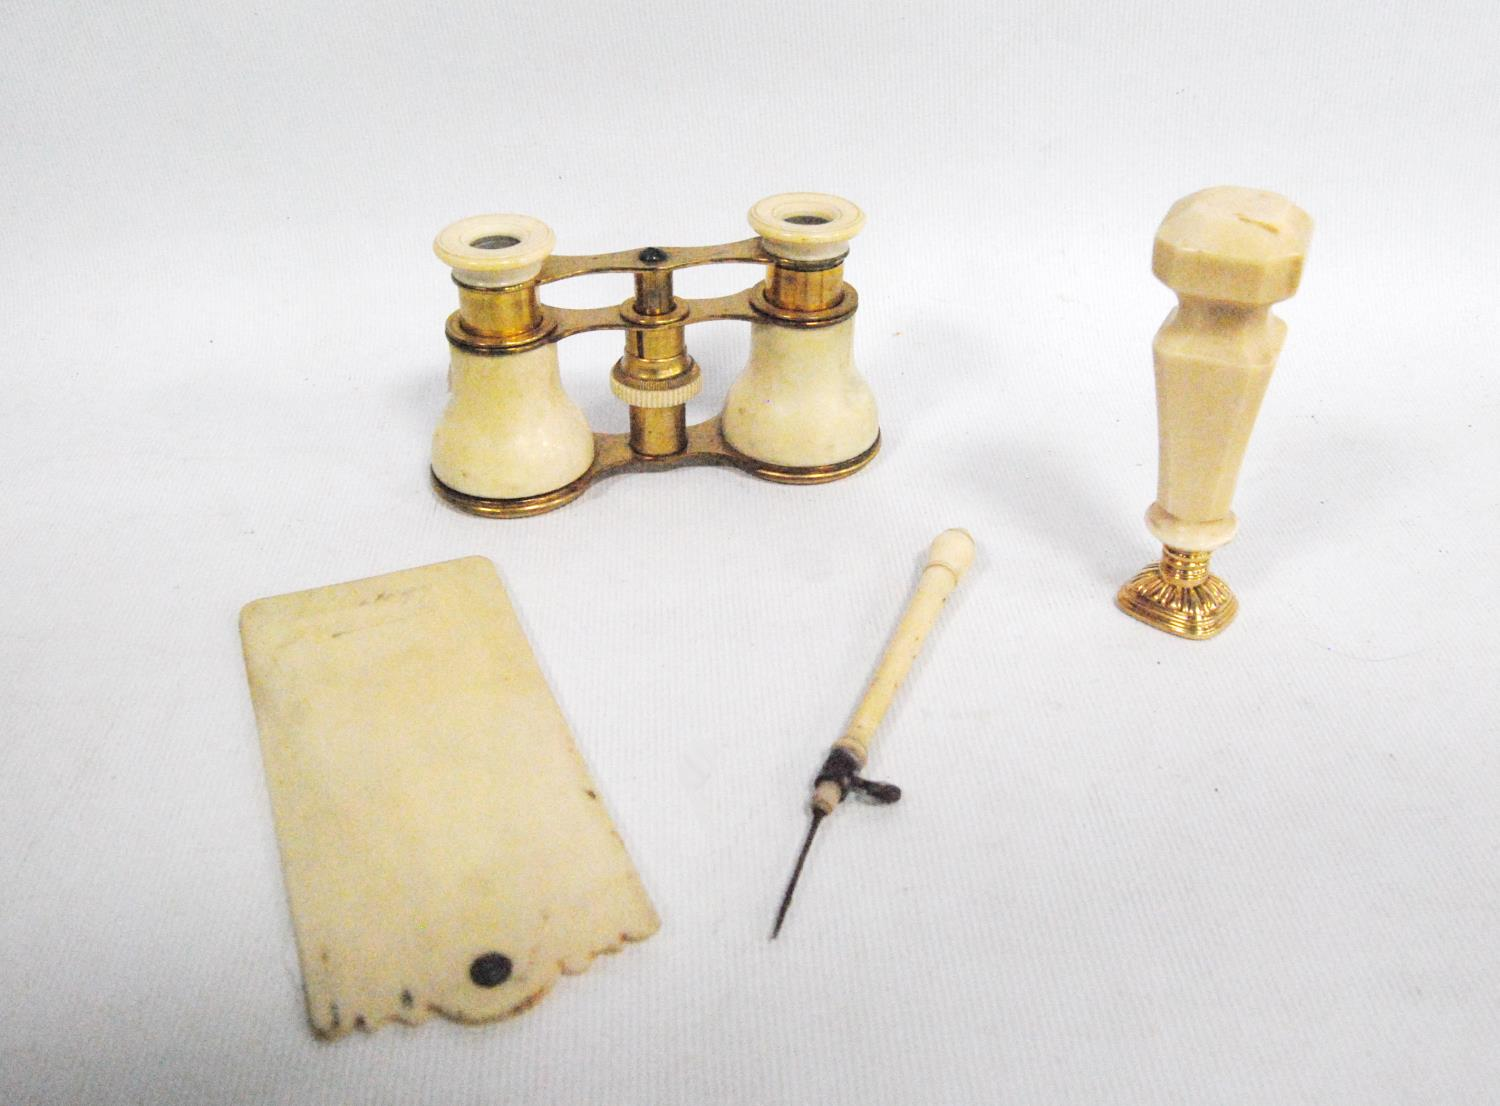 19th/early 20th century ivory scribe and plate seal, also a pair of opera glasses. - Image 2 of 2